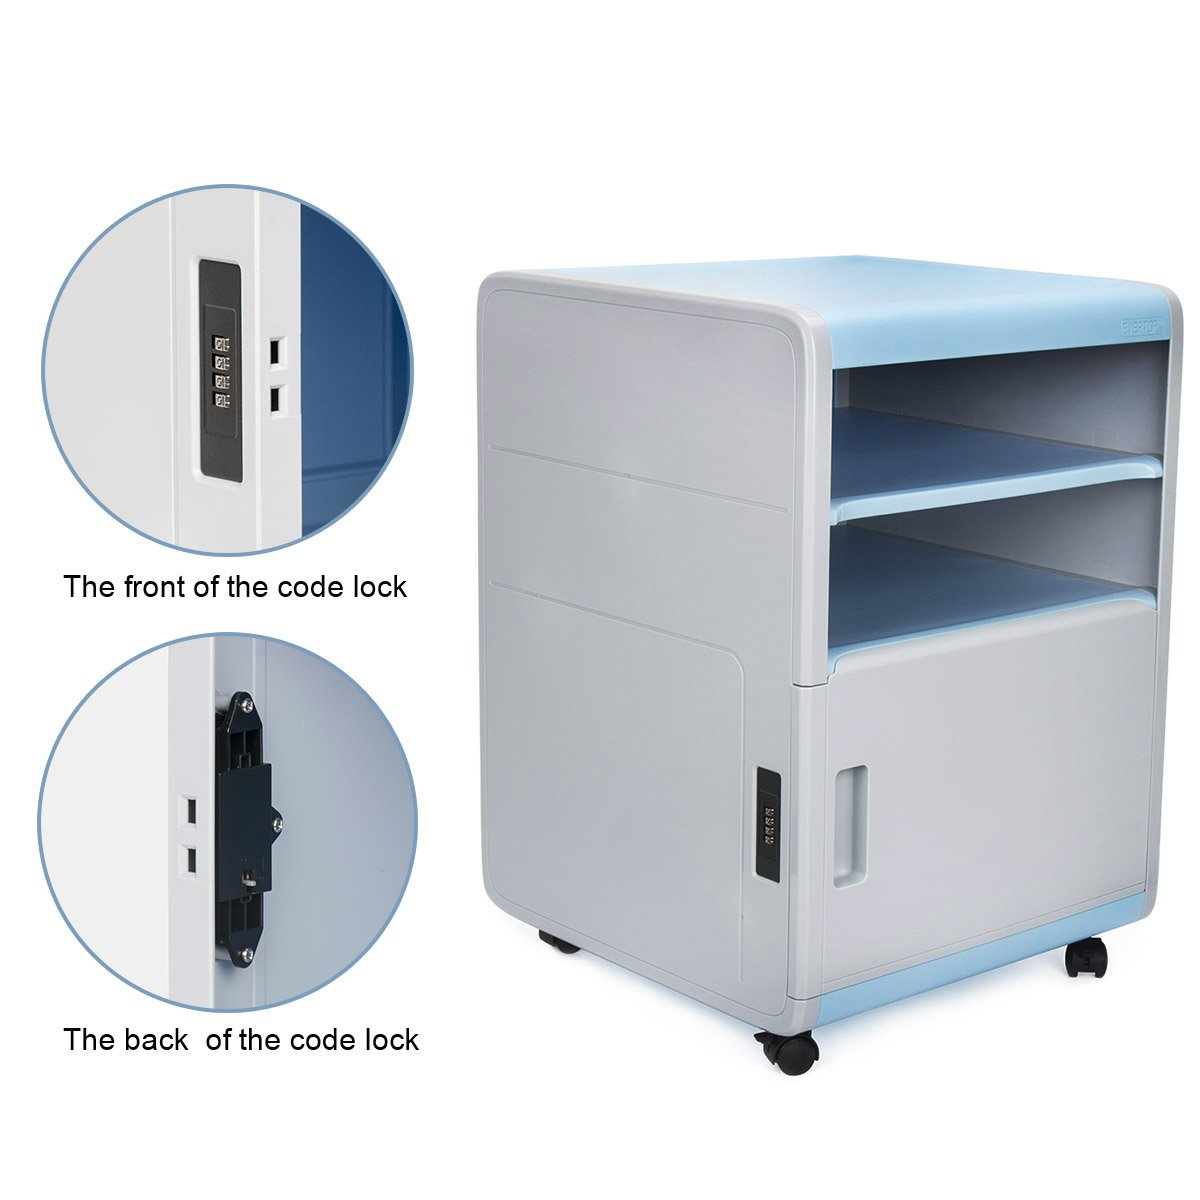 Desk Drawer Plastic Storage Drawers Desk Storage Unit Organizer Lockable File Cabinet A4 Box For Office,Home,Blue